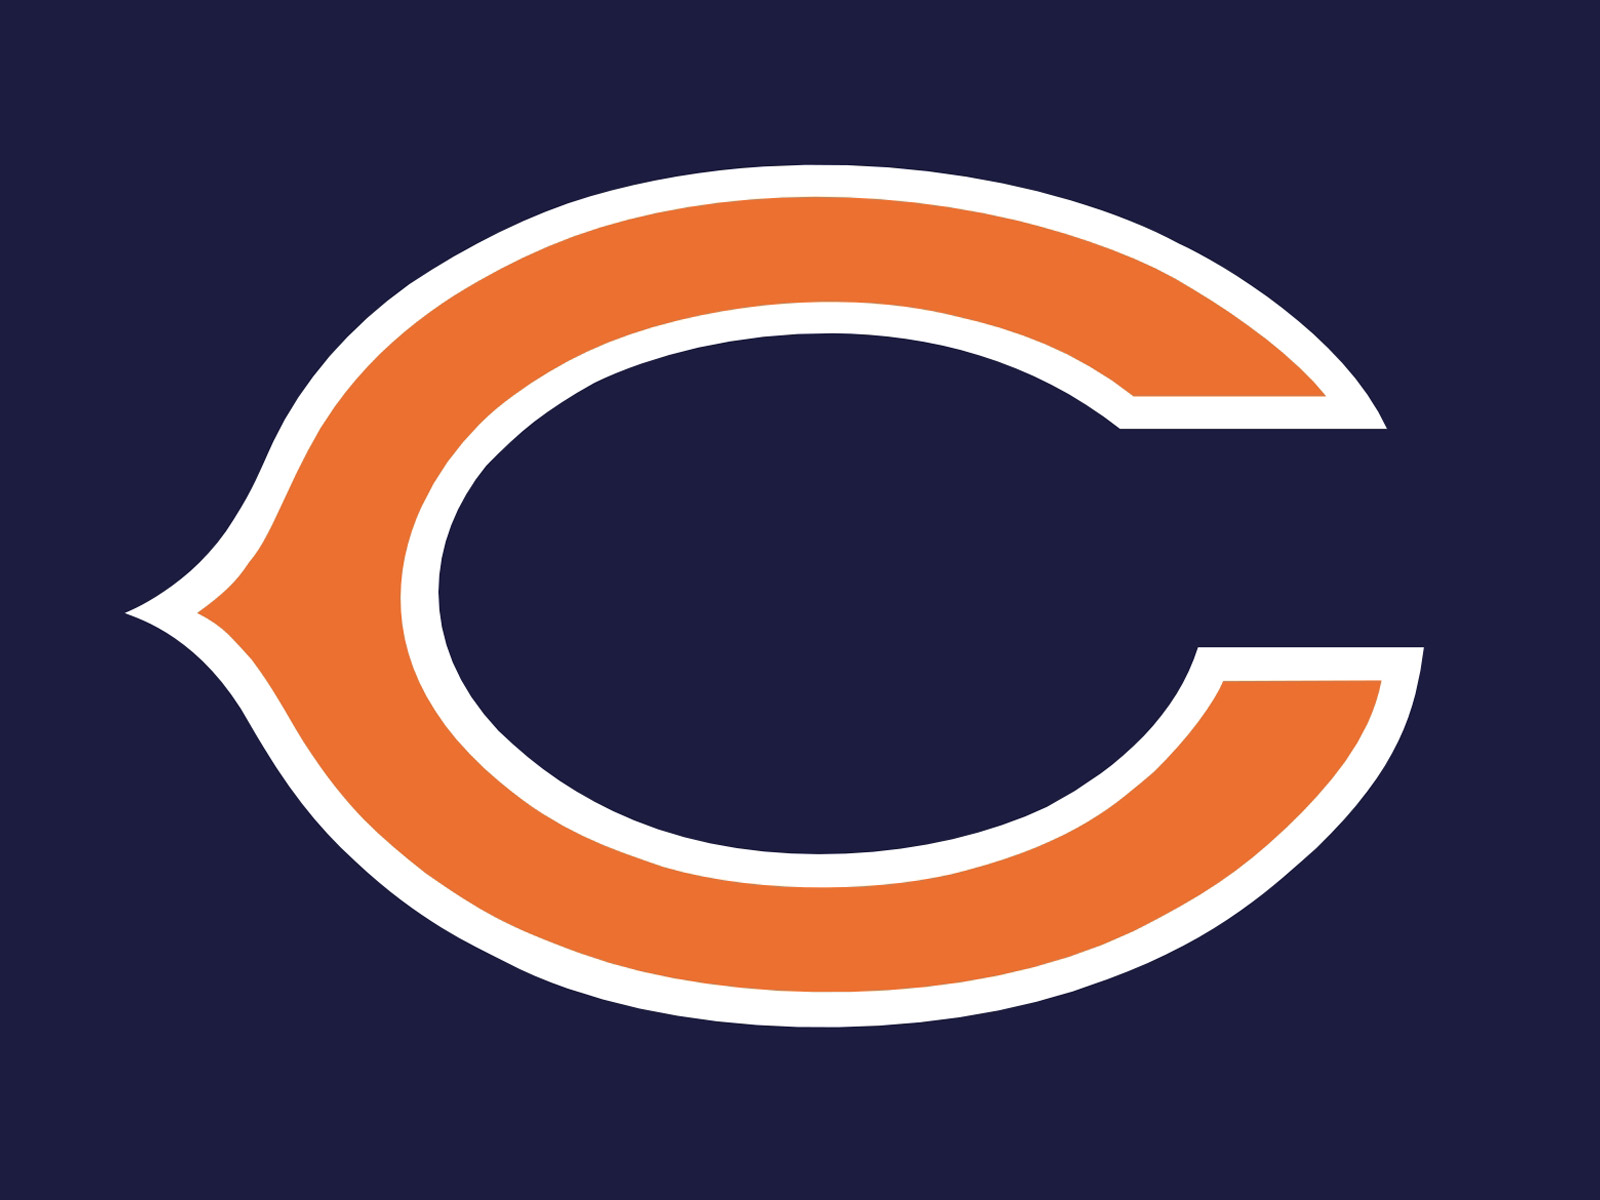 Chicago Bears have the 14th pick overall.